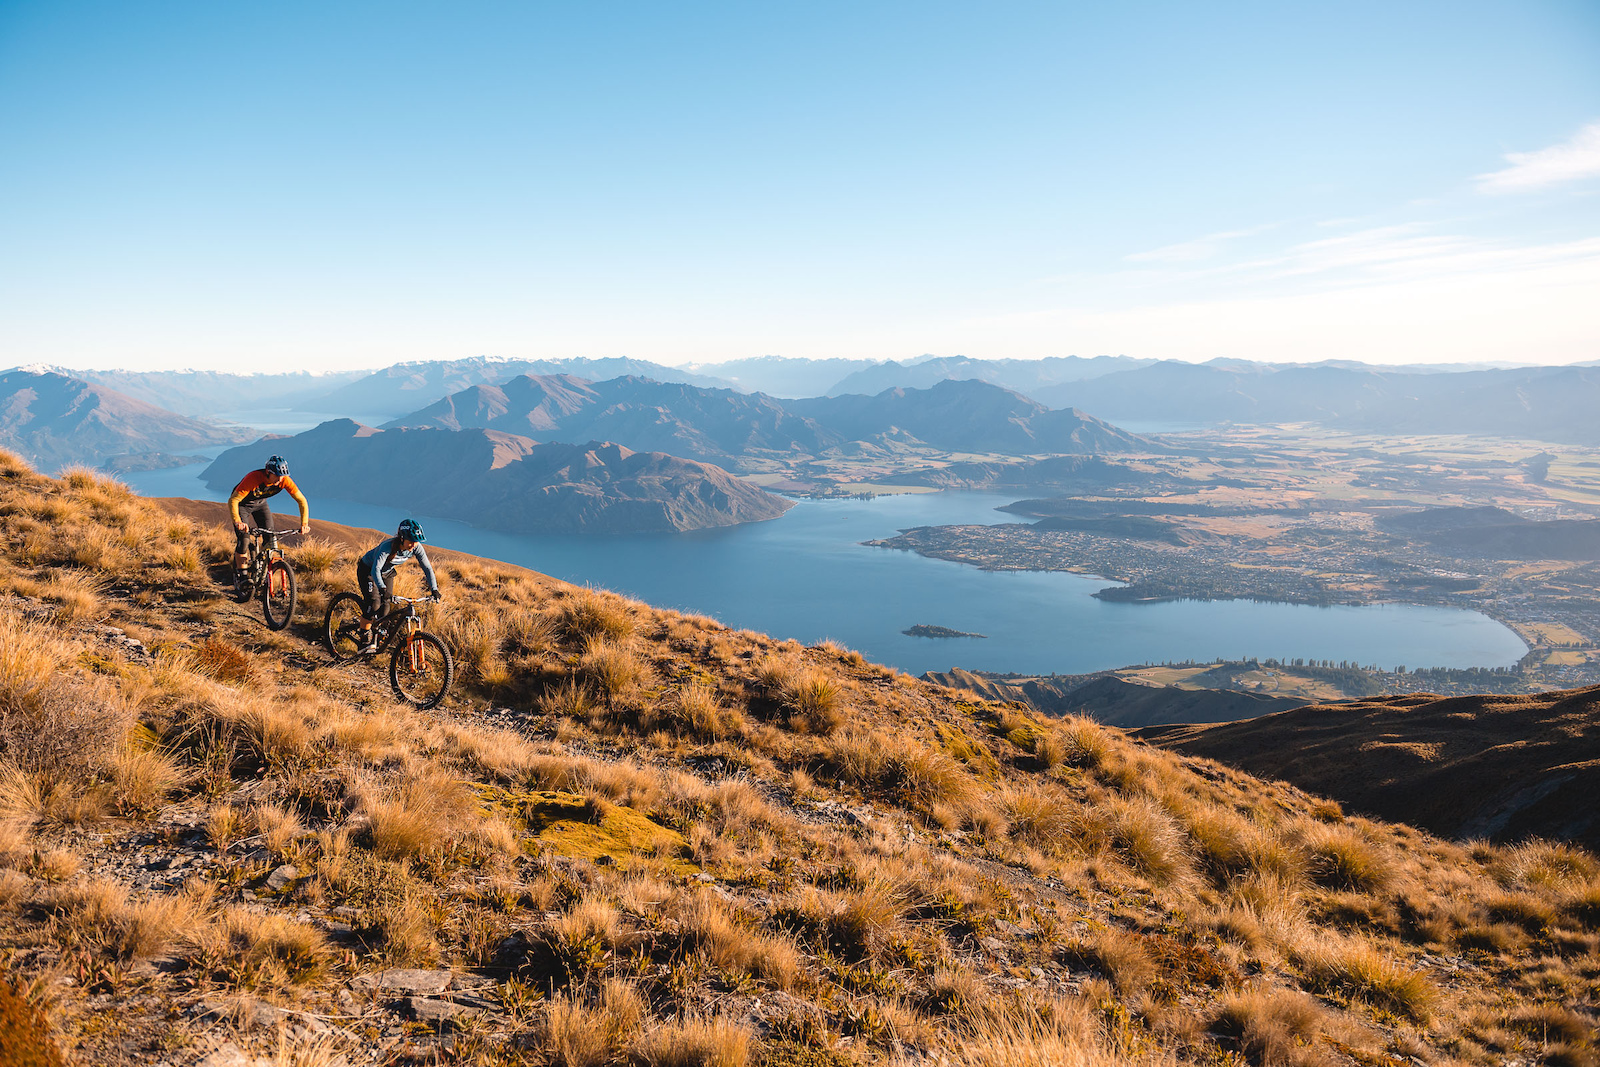 The views back over a waking Wanaka from high above are immense.